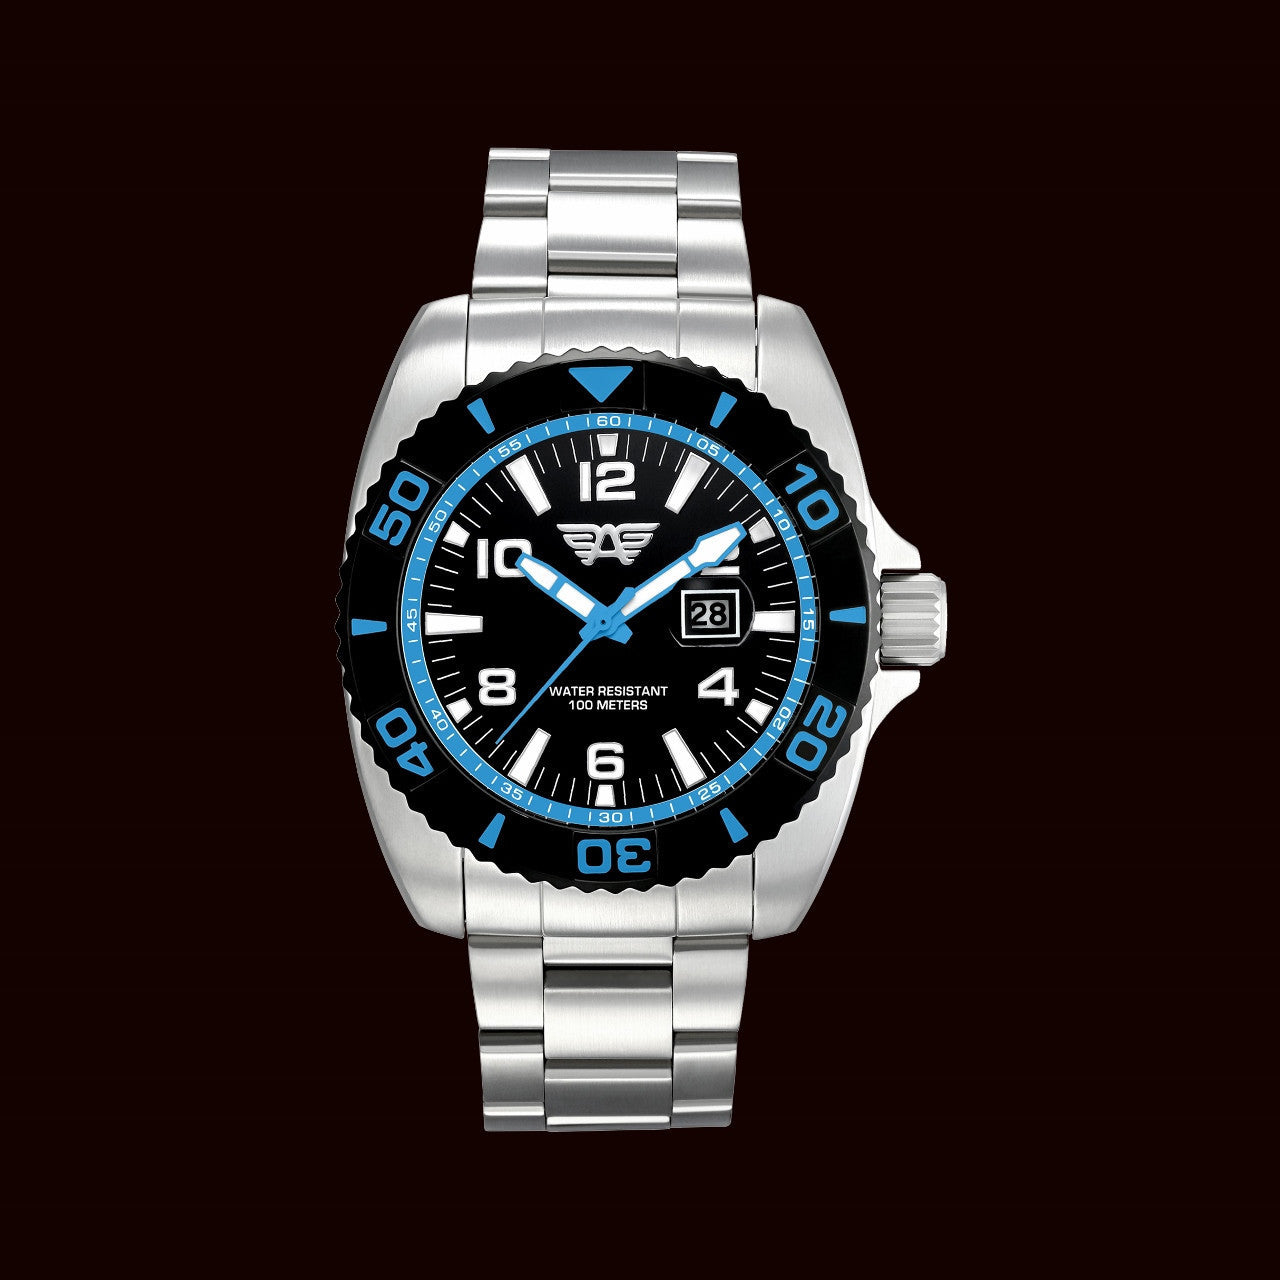 Aquarius Watches ADZ-2010-02